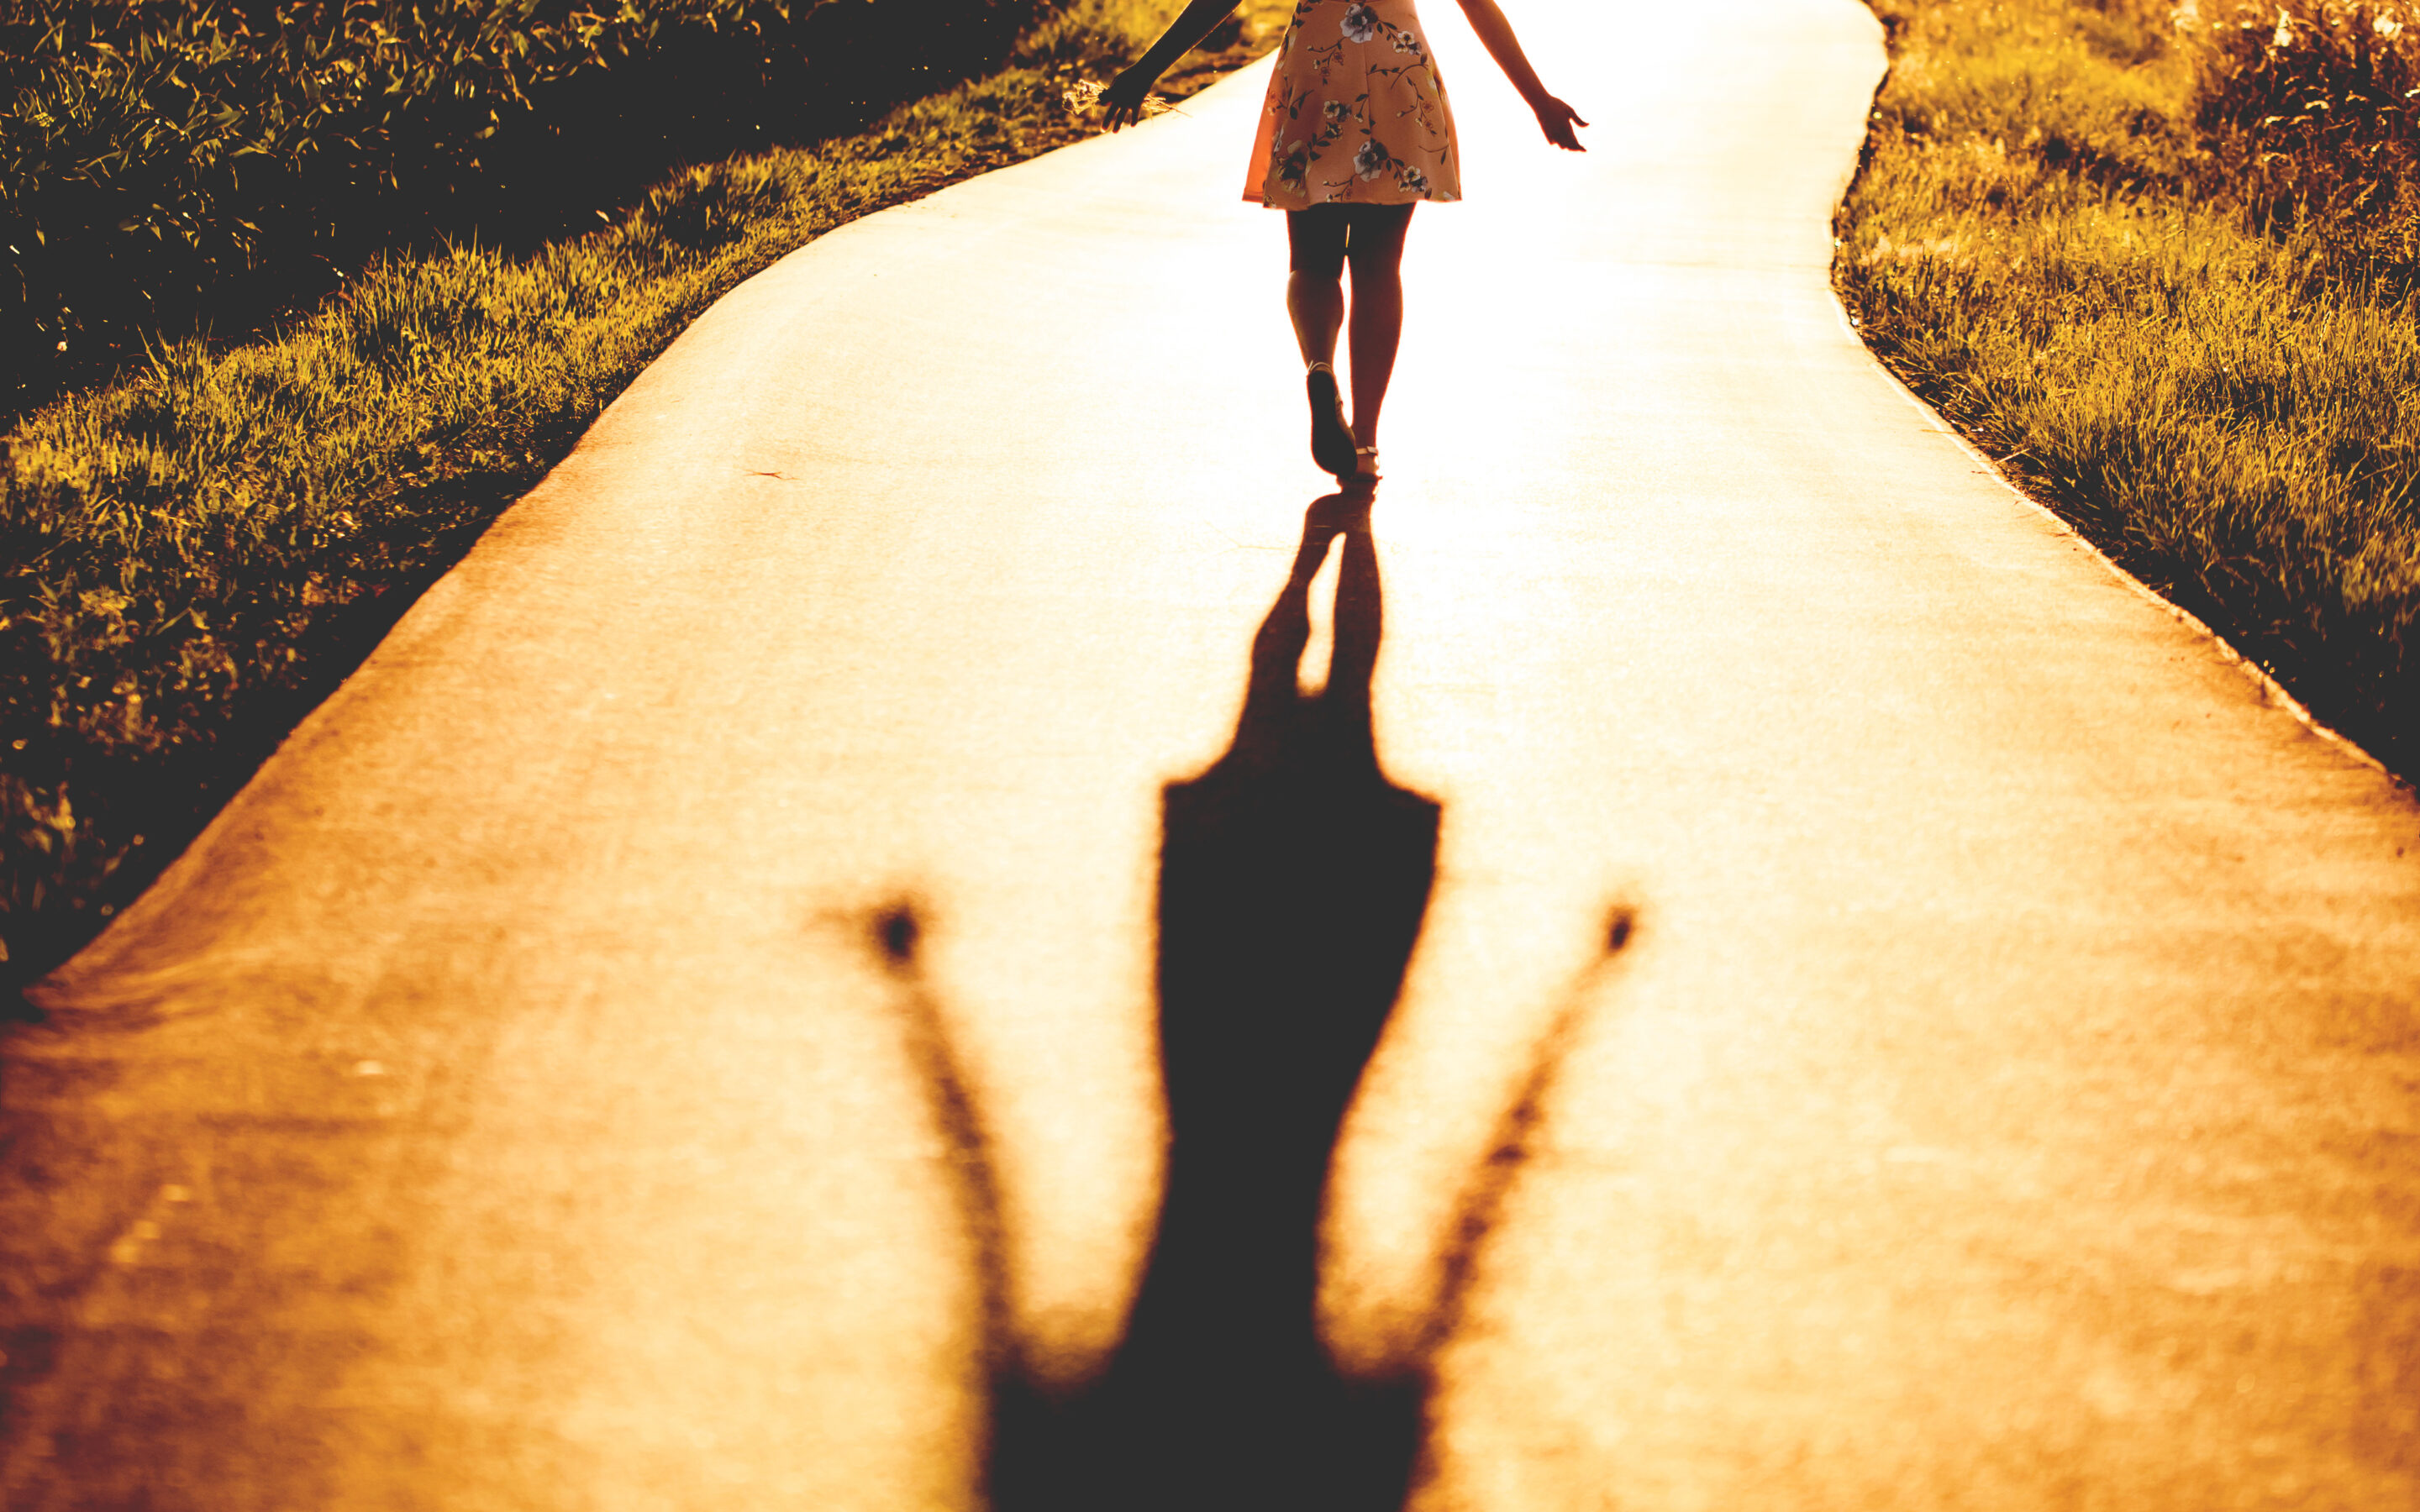 Woman walking towards light with her shadow